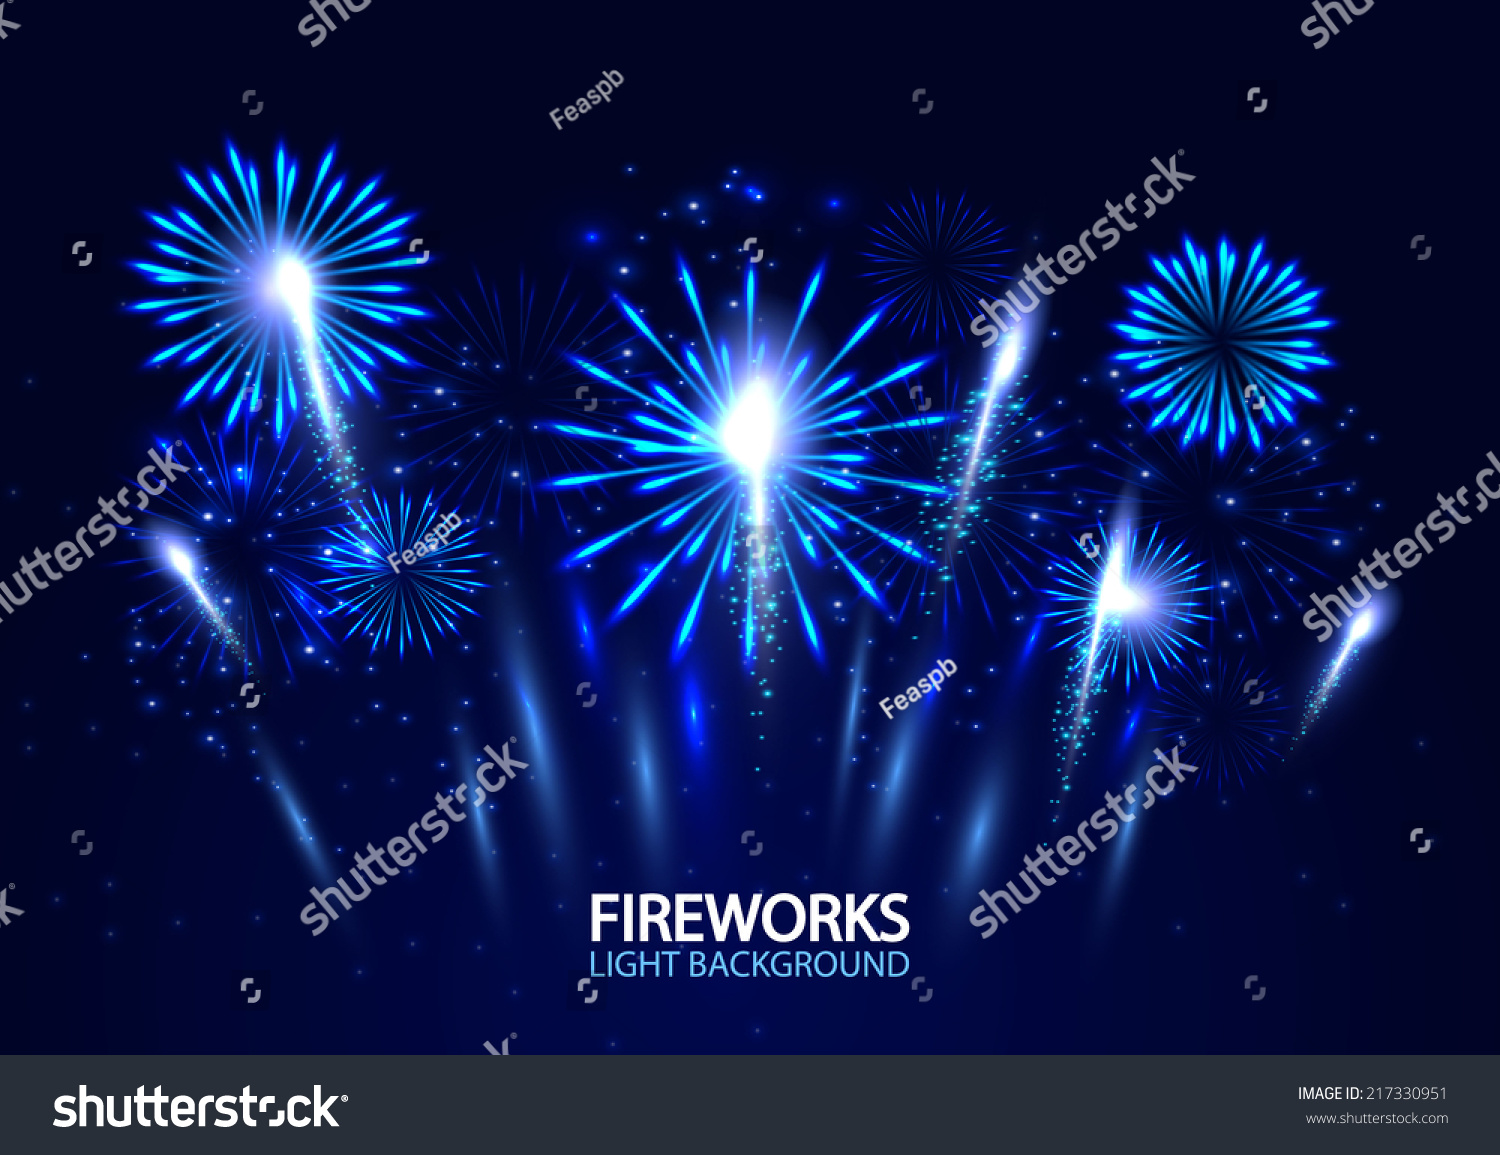 Wallpaper Salute Sky Holiday Colorful 3376x4220: Abstract Colorful Fireworks Background Vector Illustration